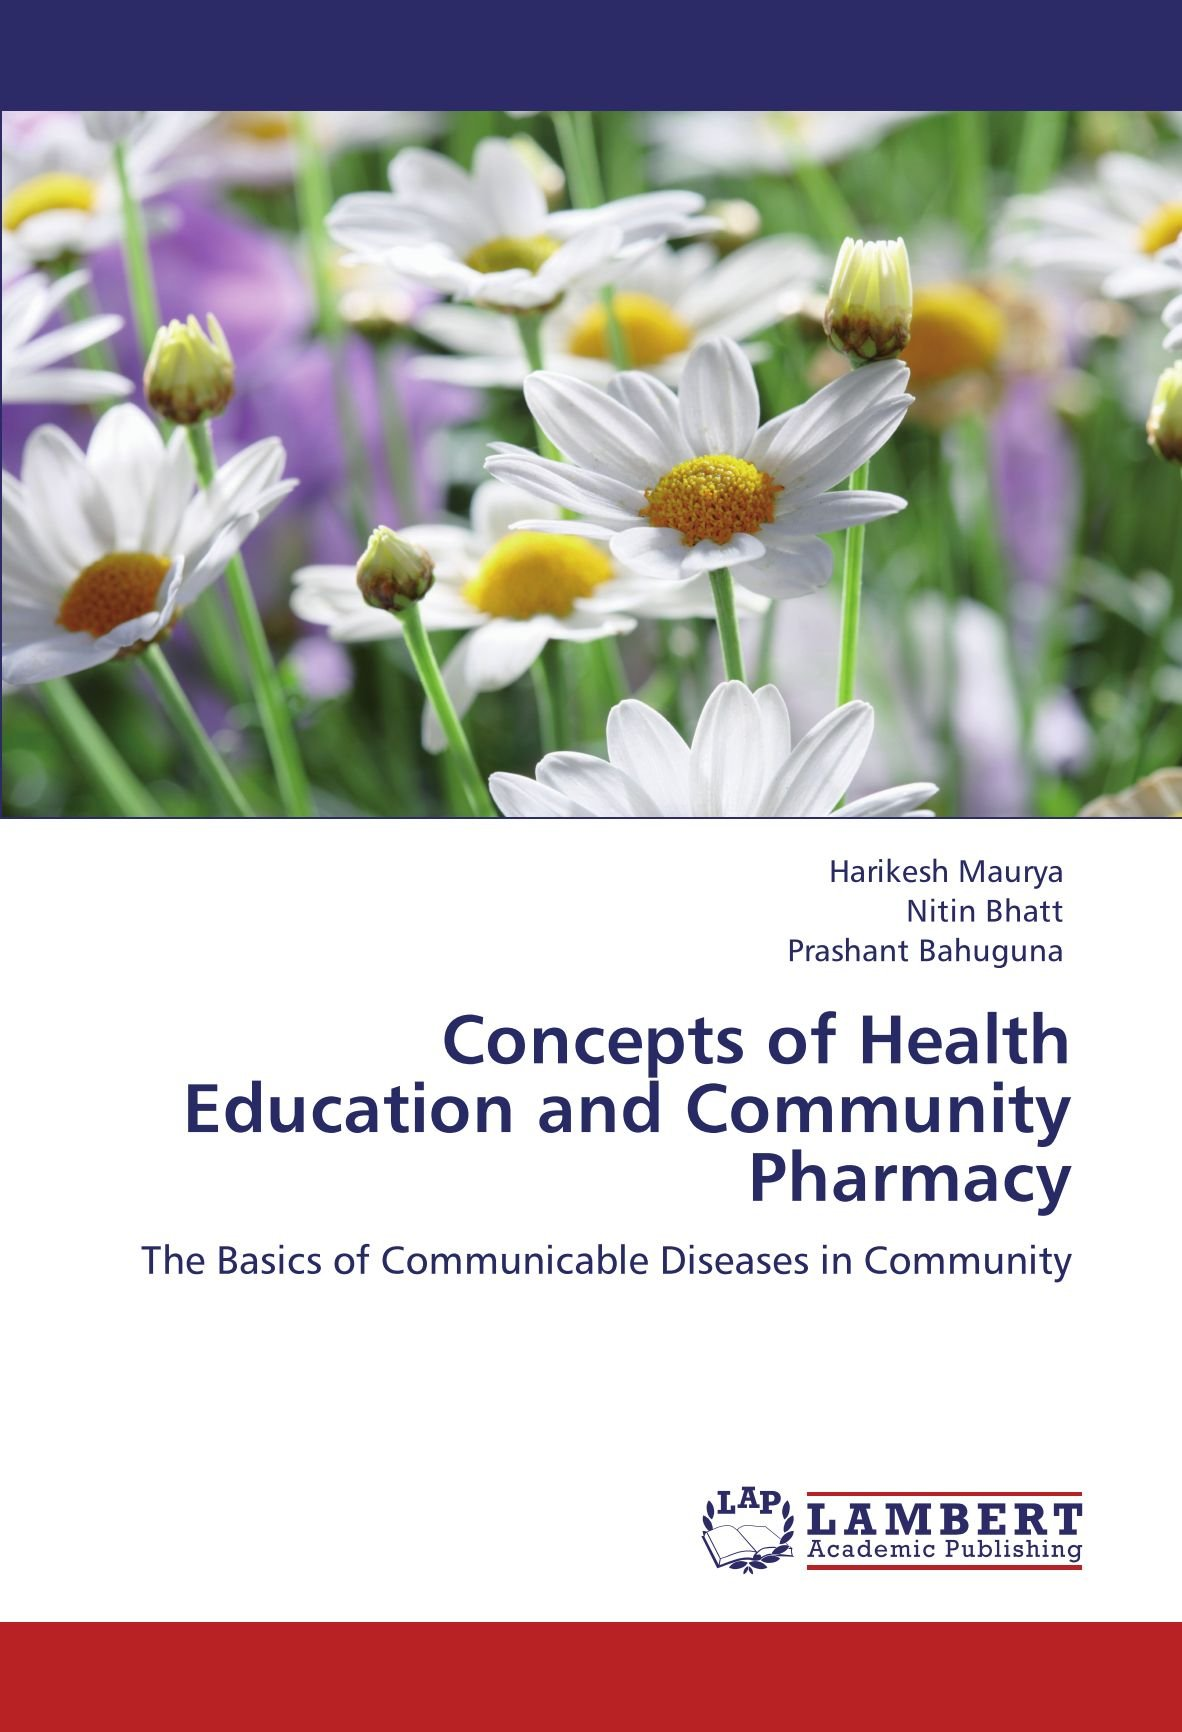 Download Concepts of Health Education and Community Pharmacy: The Basics of Communicable Diseases in Community ebook